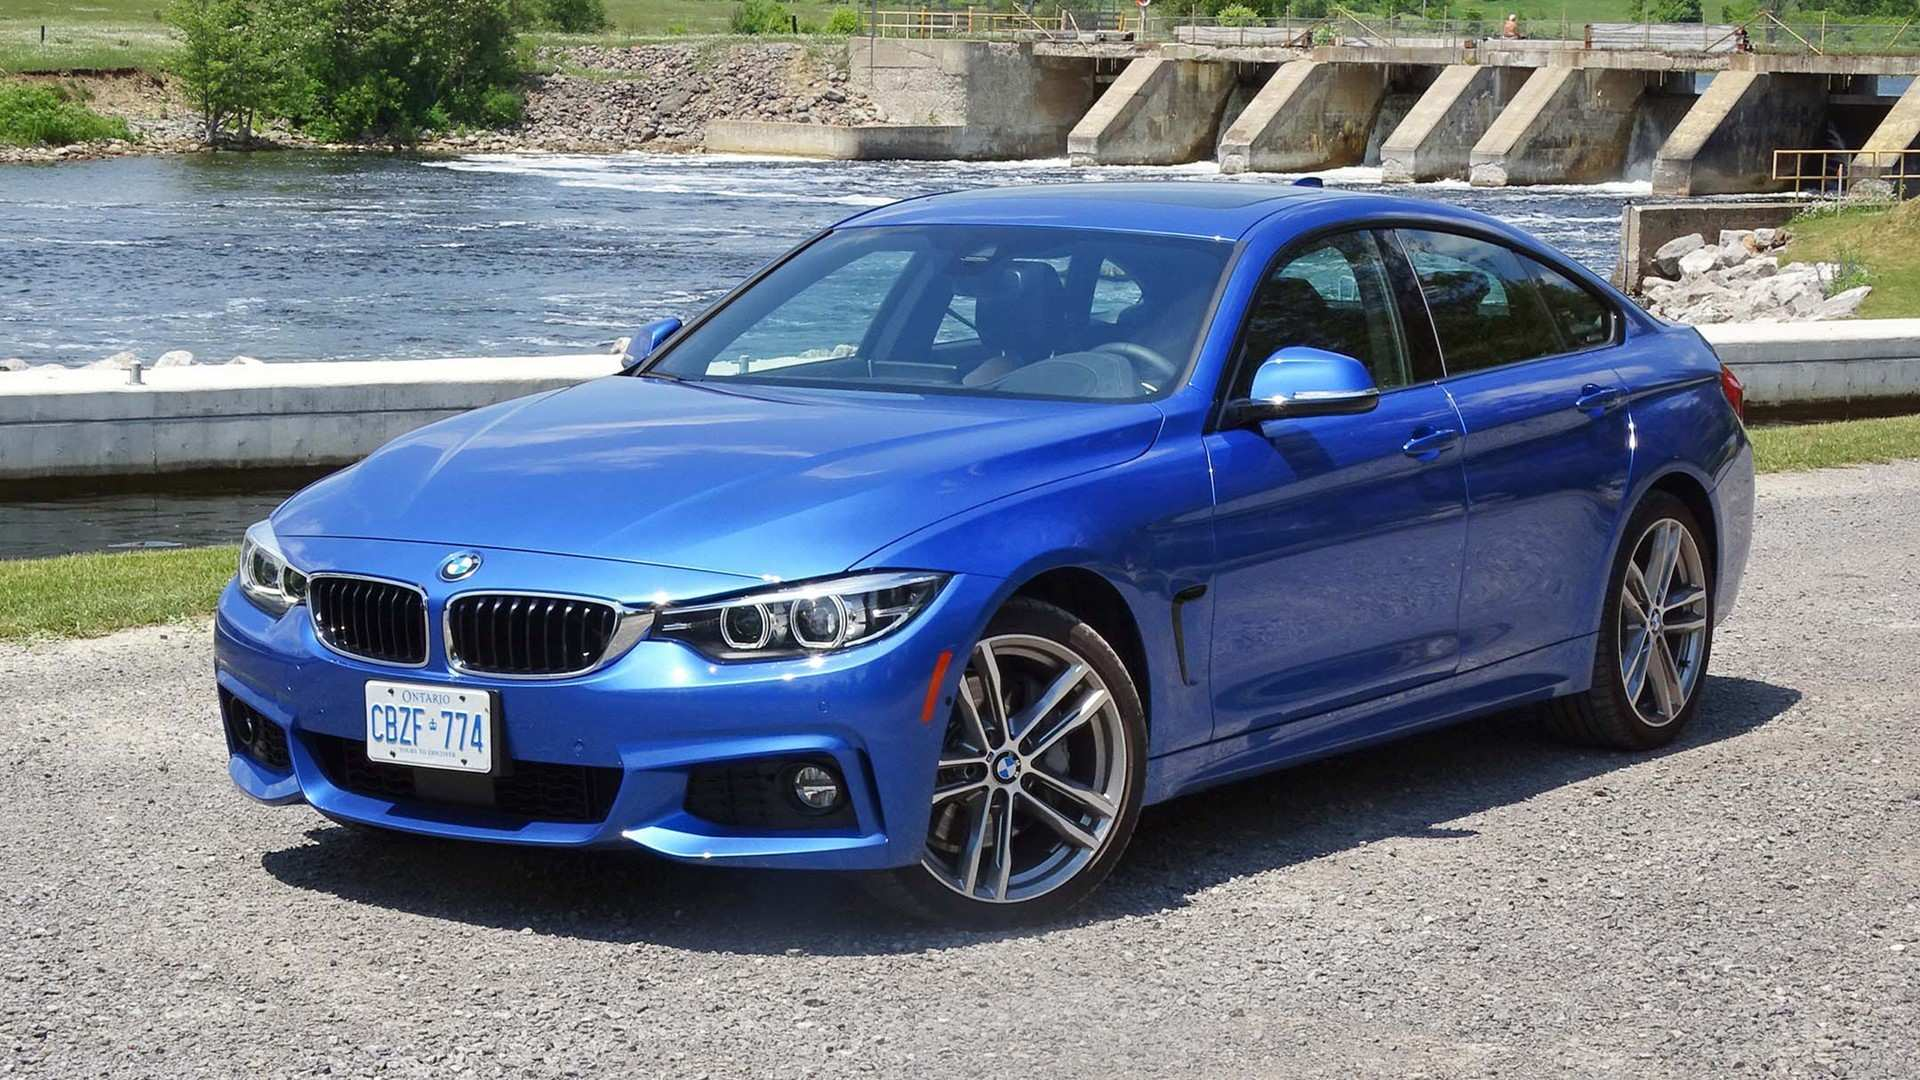 74 Best Review 2019 Bmw 440I Xdrive Gran Coupe Reviews for 2019 Bmw 440I Xdrive Gran Coupe